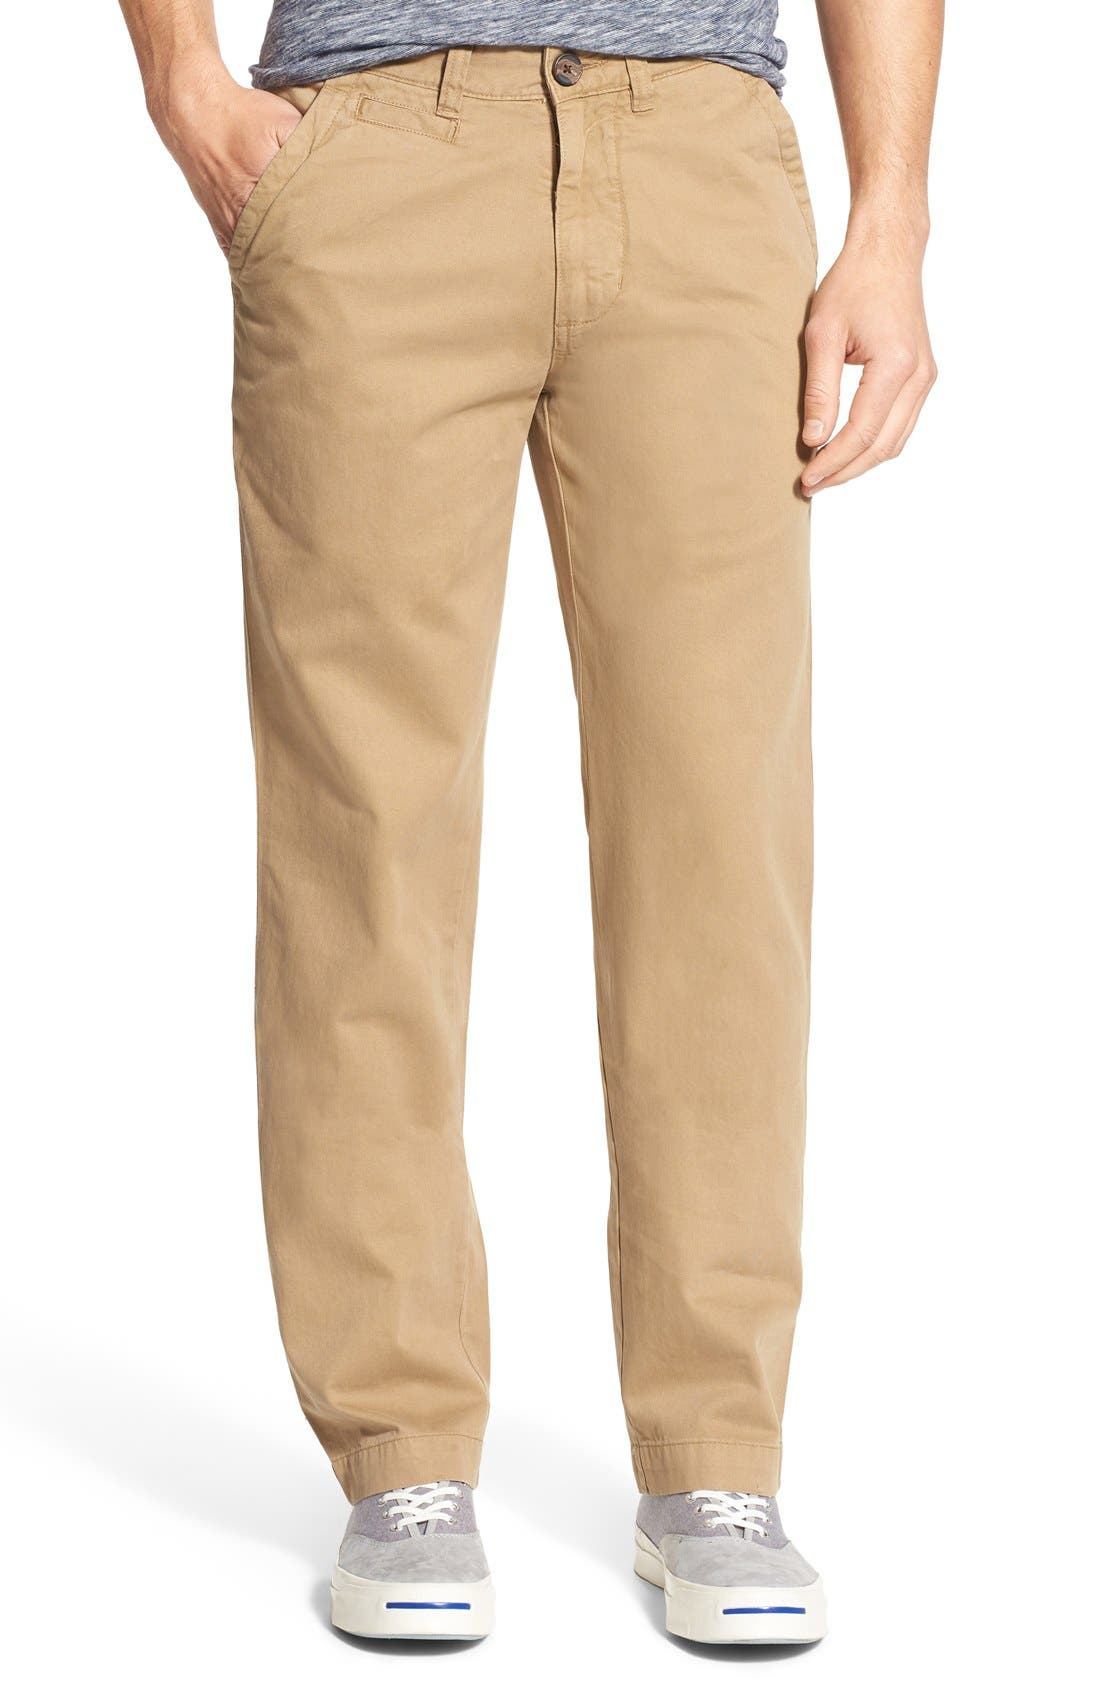 'Sahara' Trim Fit Vintage Washed Twill Chinos,                             Main thumbnail 4, color,